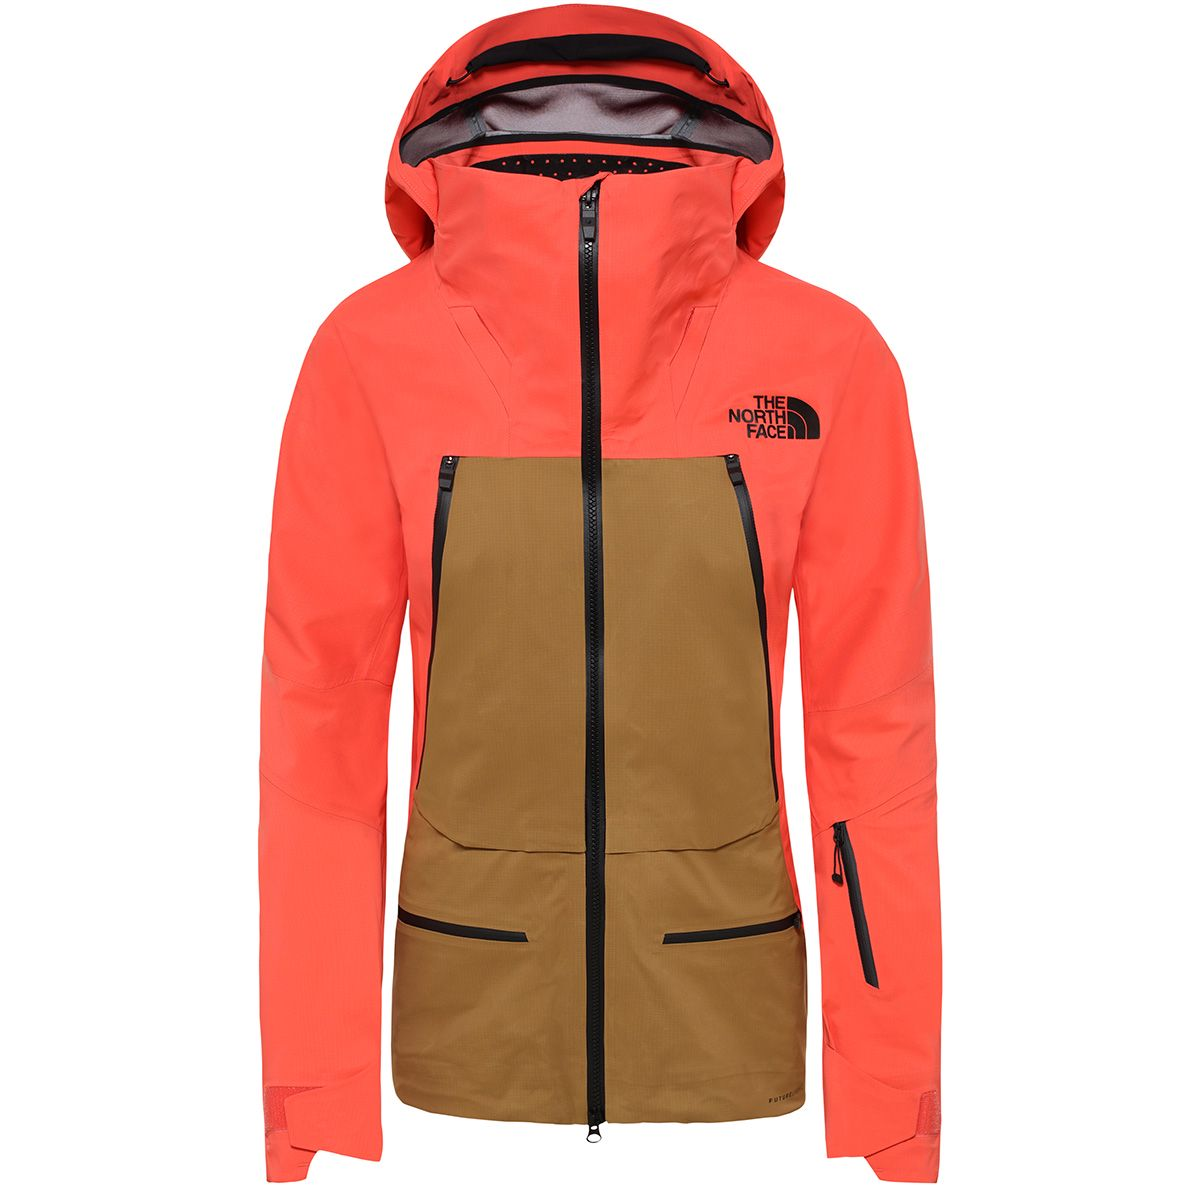 The North Face Damen Purist Jacke (Größe L, Orange) | Skijacken > Damen